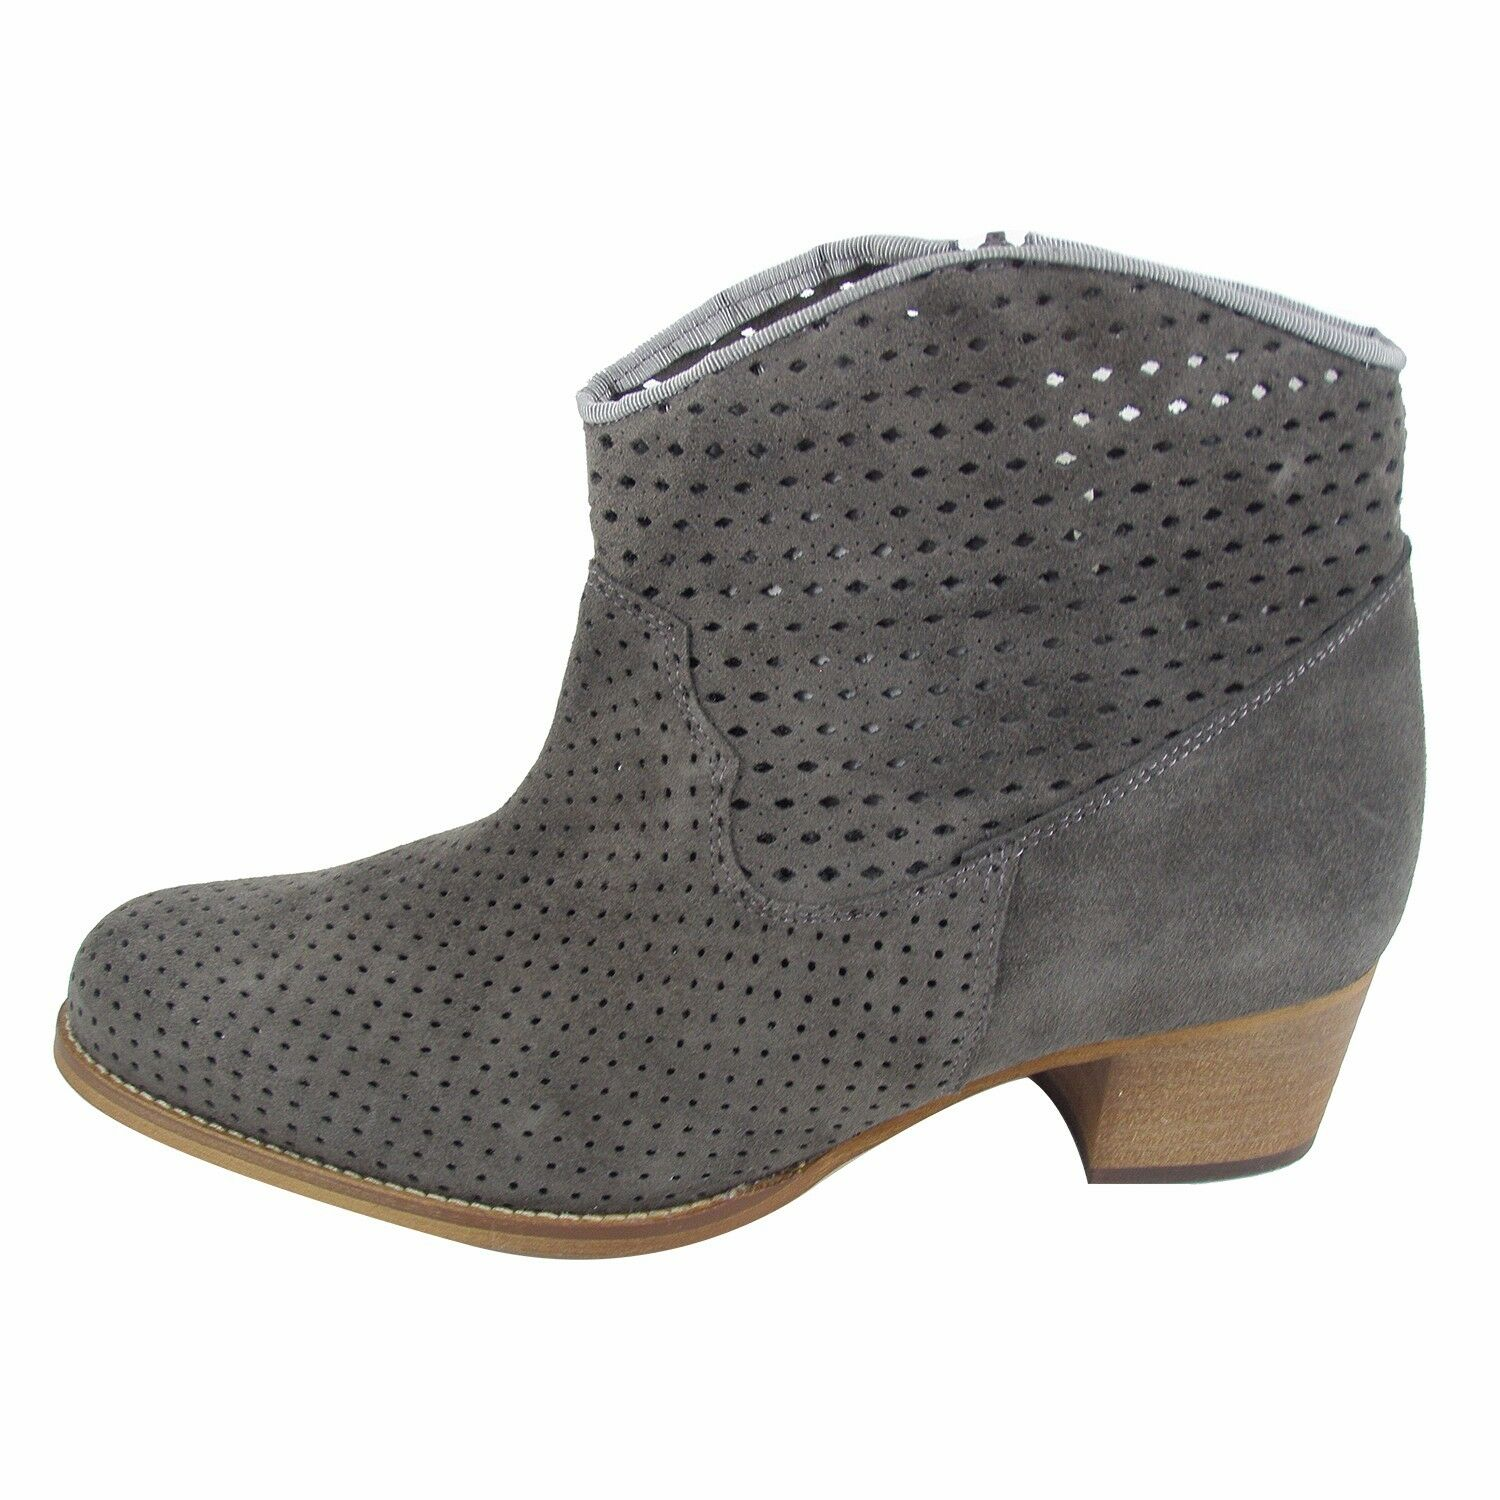 Size 8 (UK Size 6 / ) Women's Grey Suede Ankle Boots with wood block heel